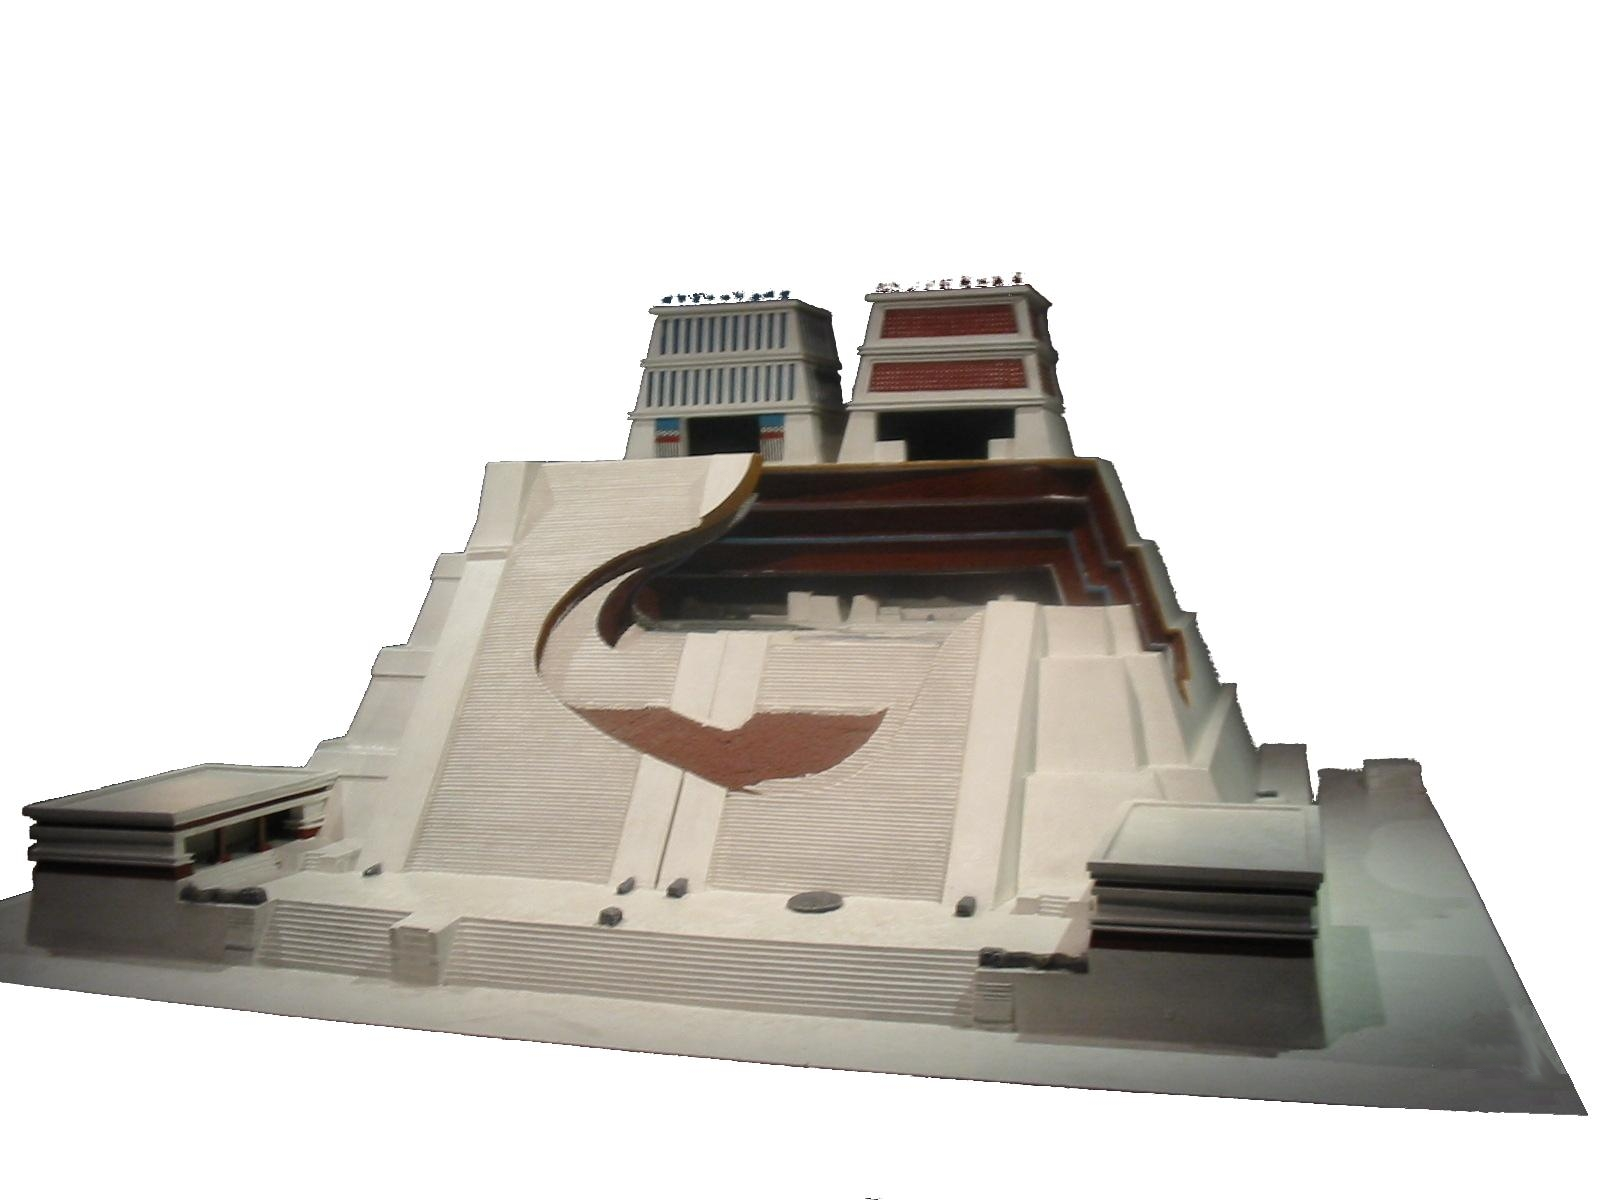 3d model of the Azteque Pyramid of Templo del Mayor in Mexico City produced by Leigh Thelmadatter